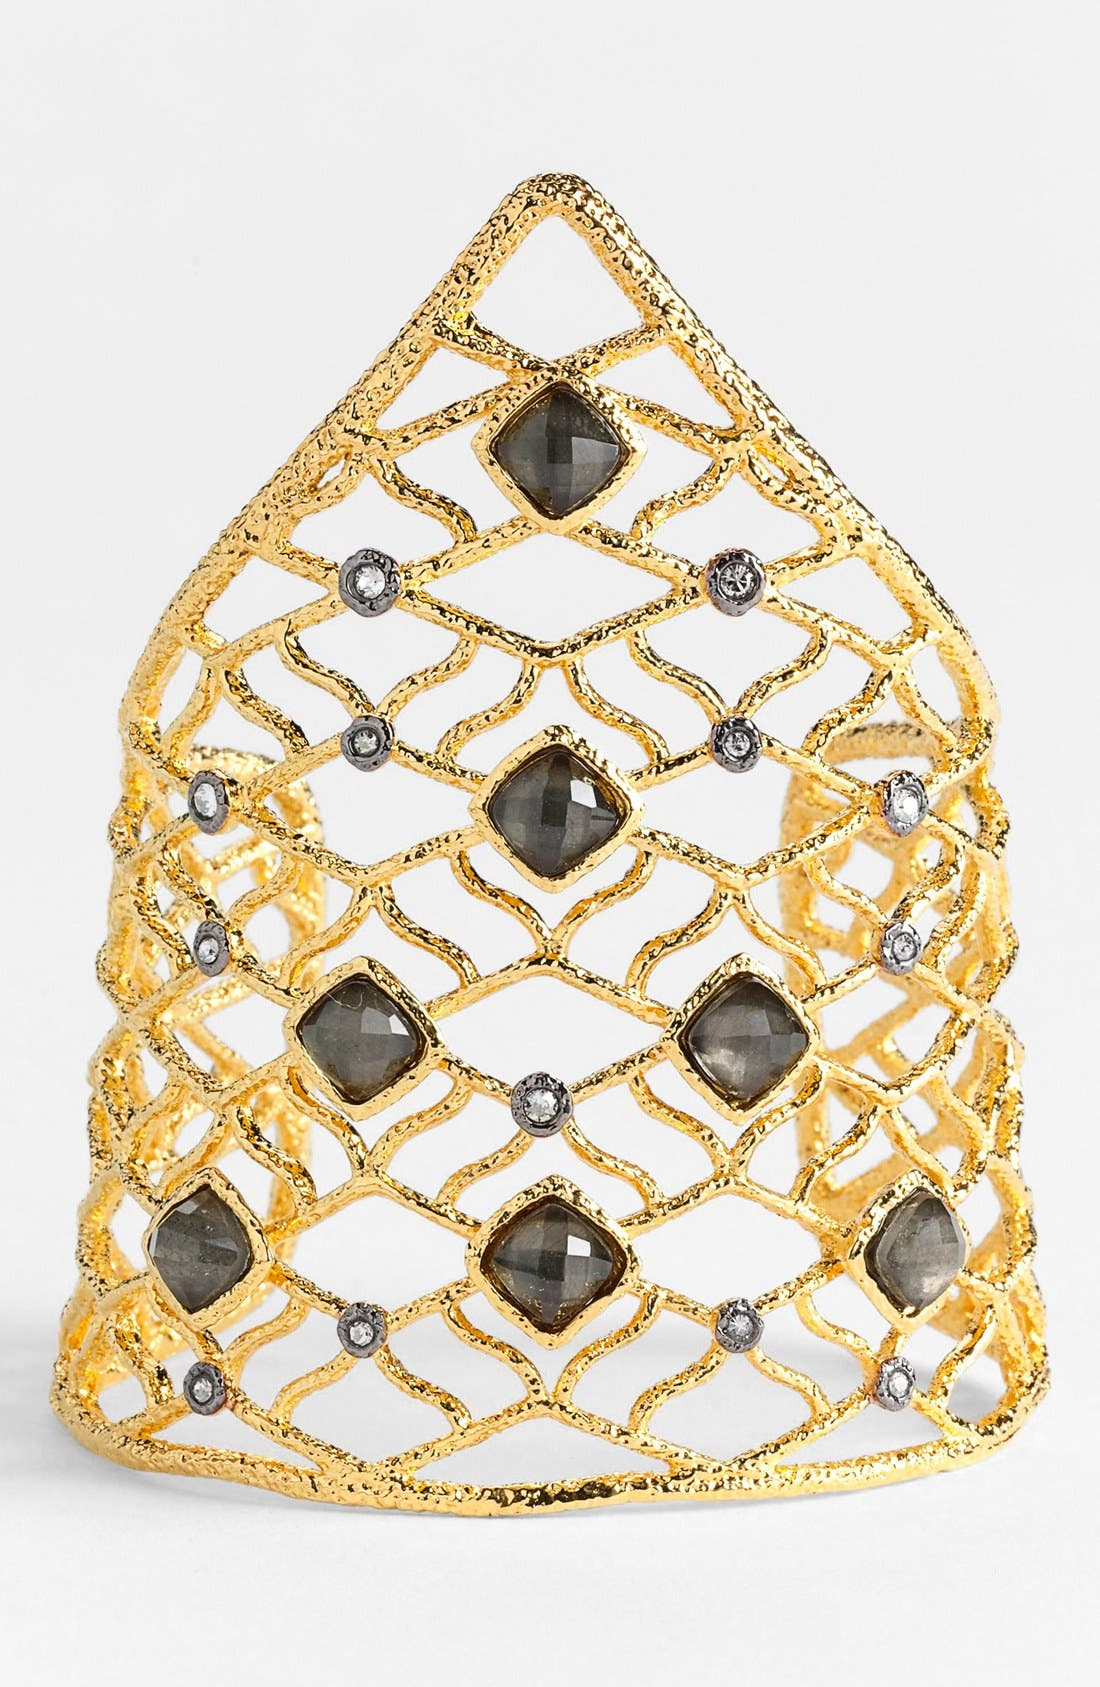 Main Image - Alexis Bittar 'Elements - Lace' Cuff